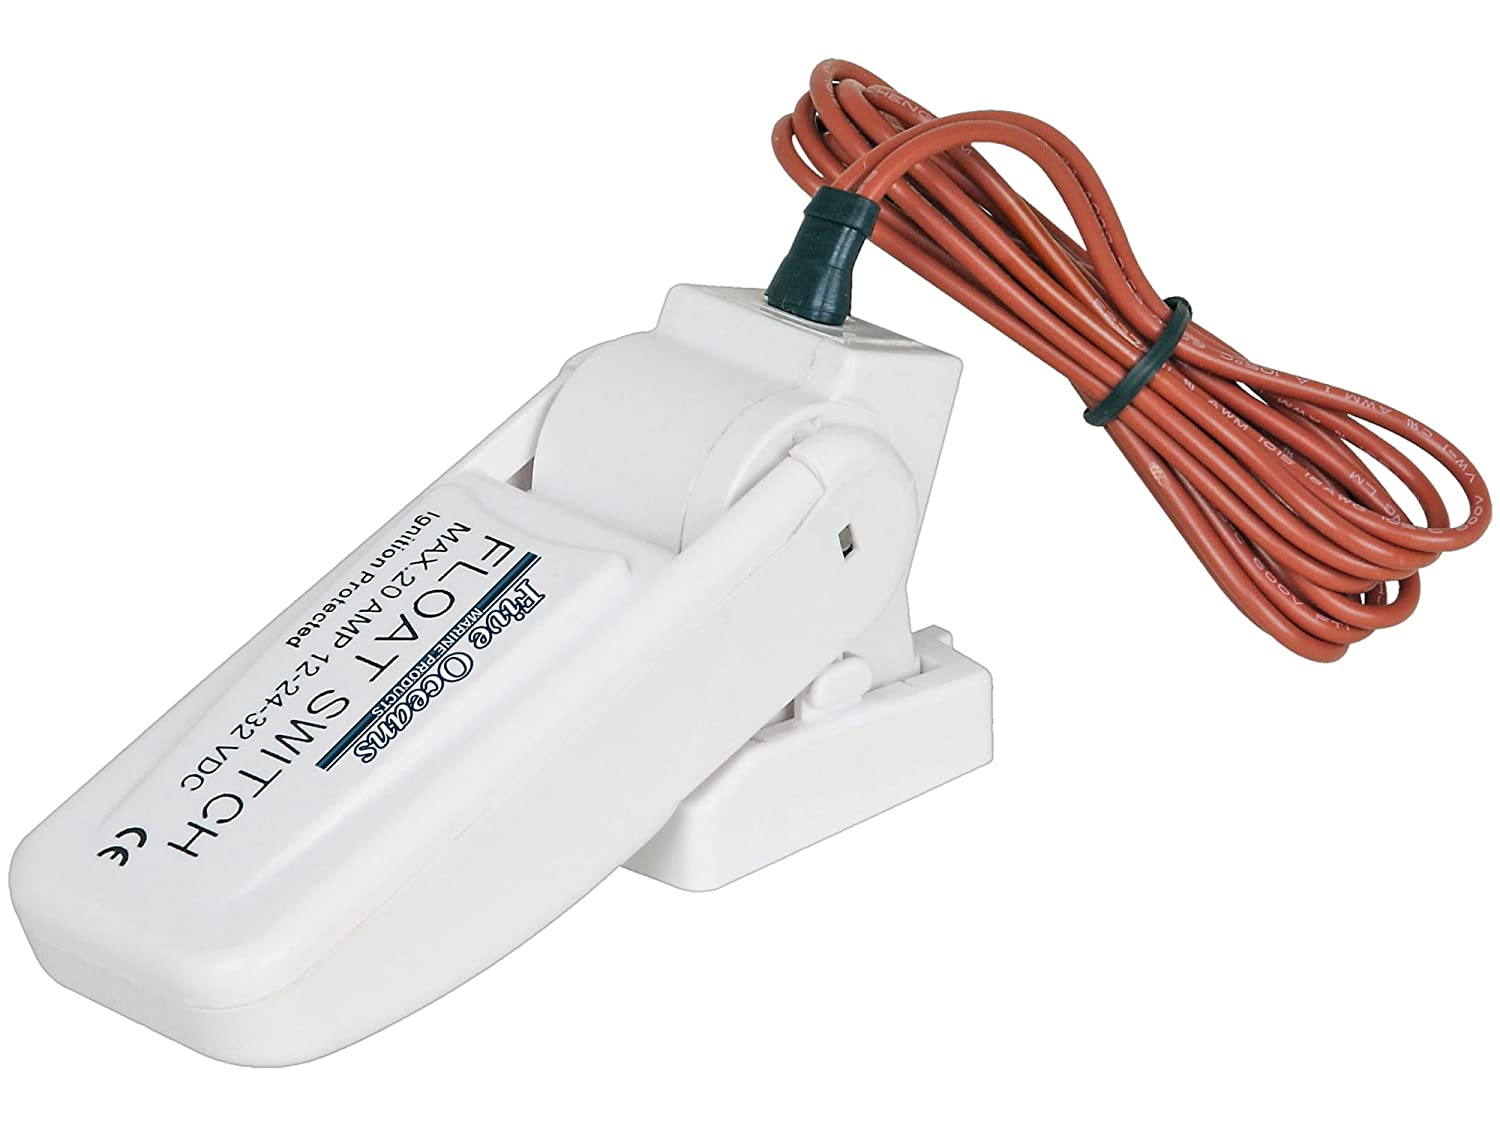 Corroded Wire Bilge Float Switch Boat Pump On Rule Automatic Pumps Wiring Diagram Marine Amp For Five Oceans Seaflo Sports Outdoors 1500x1125